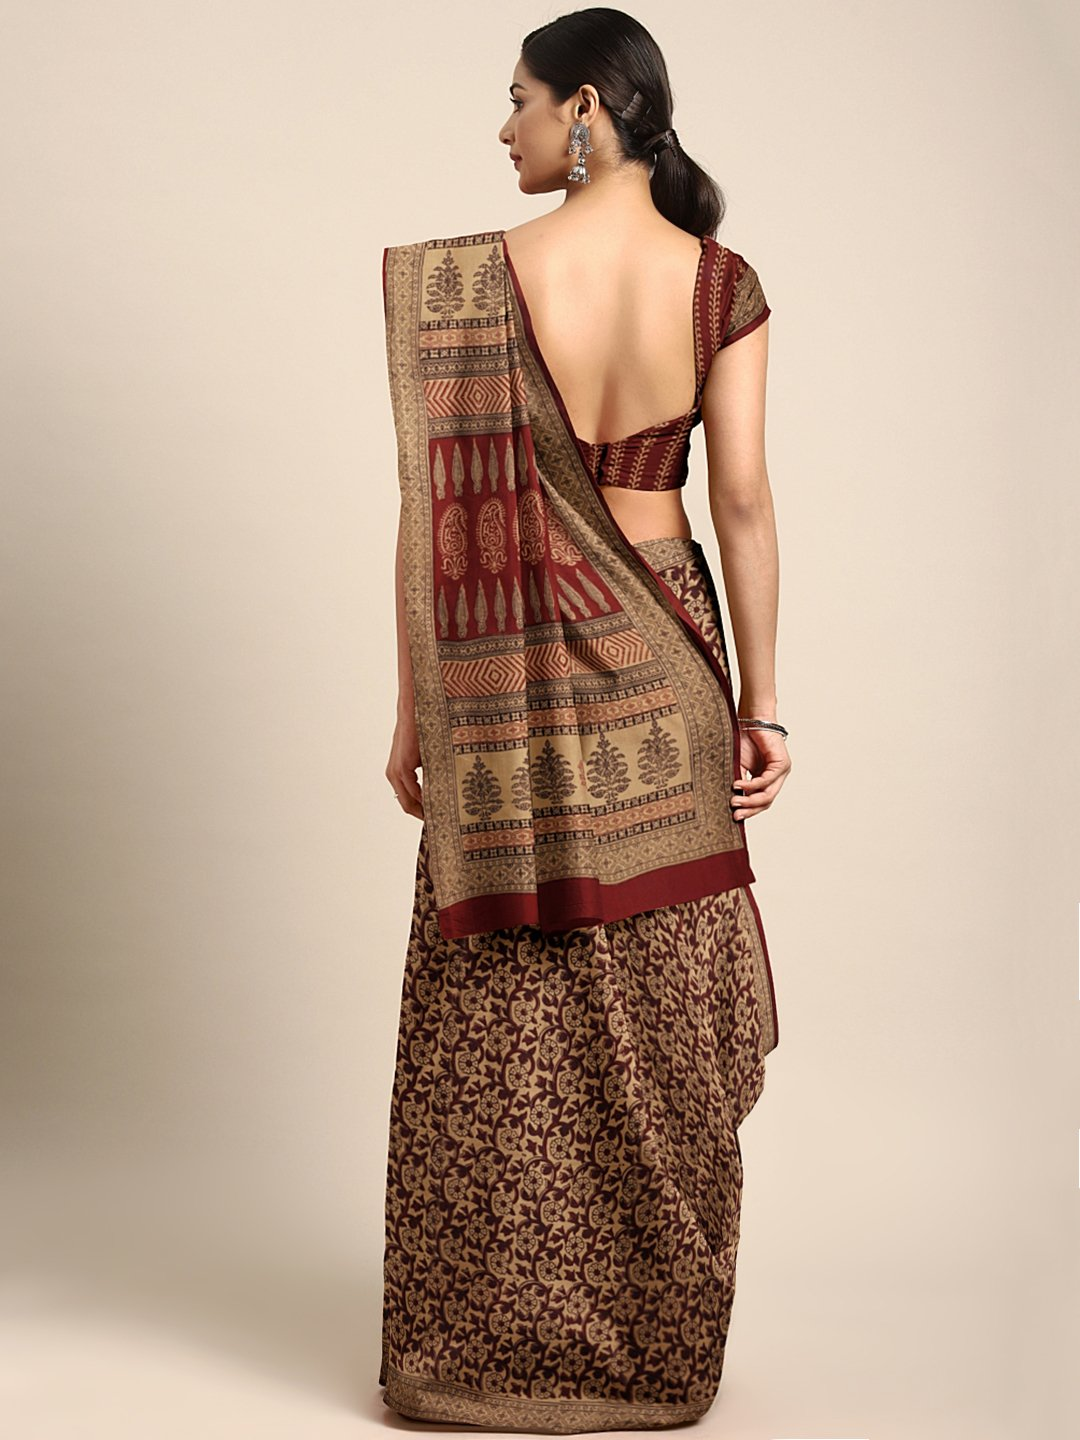 Brown Maroon Pure Cotton Handblock Print Bagh Saree-Saree-Kalakari India-MRBASA0009-Bagh, Cotton, Geographical Indication, Hand Blocks, Hand Crafted, Heritage Prints, Natural Dyes, Sarees, Sustainable Fabrics-[Linen,Ethnic,wear,Fashionista,Handloom,Handicraft,Indigo,blockprint,block,print,Cotton,Chanderi,Blue, latest,classy,party,bollywood,trendy,summer,style,traditional,formal,elegant,unique,style,hand,block,print, dabu,booti,gift,present,glamorous,affordable,collectible,Sari,Saree,printed, hol